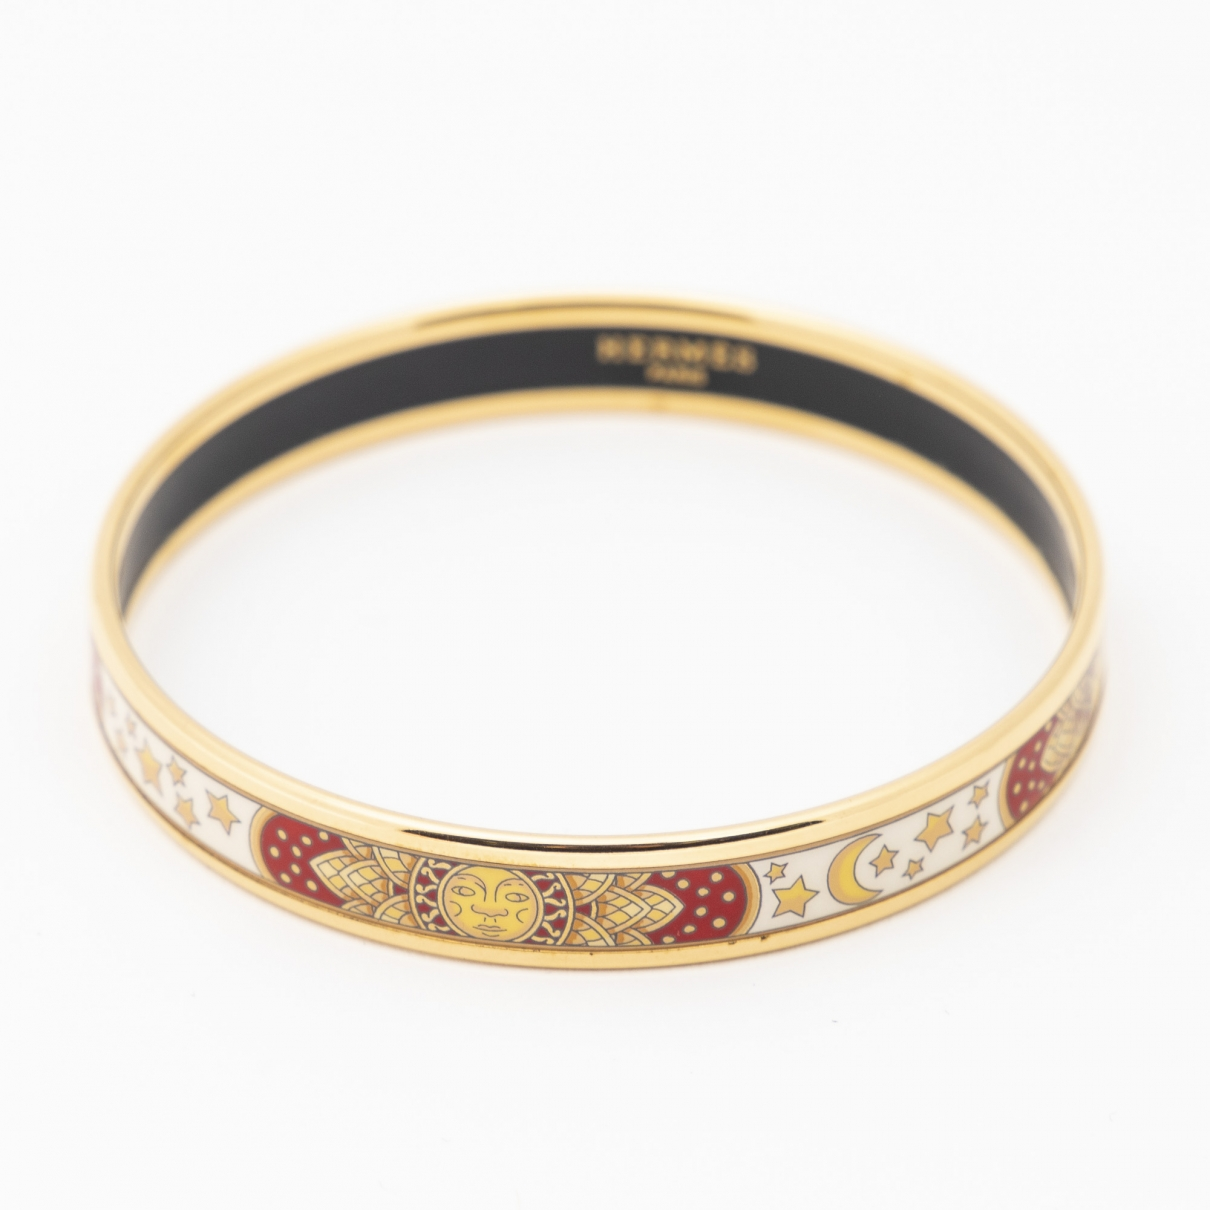 Hermes \N Armband in  Gold Metall